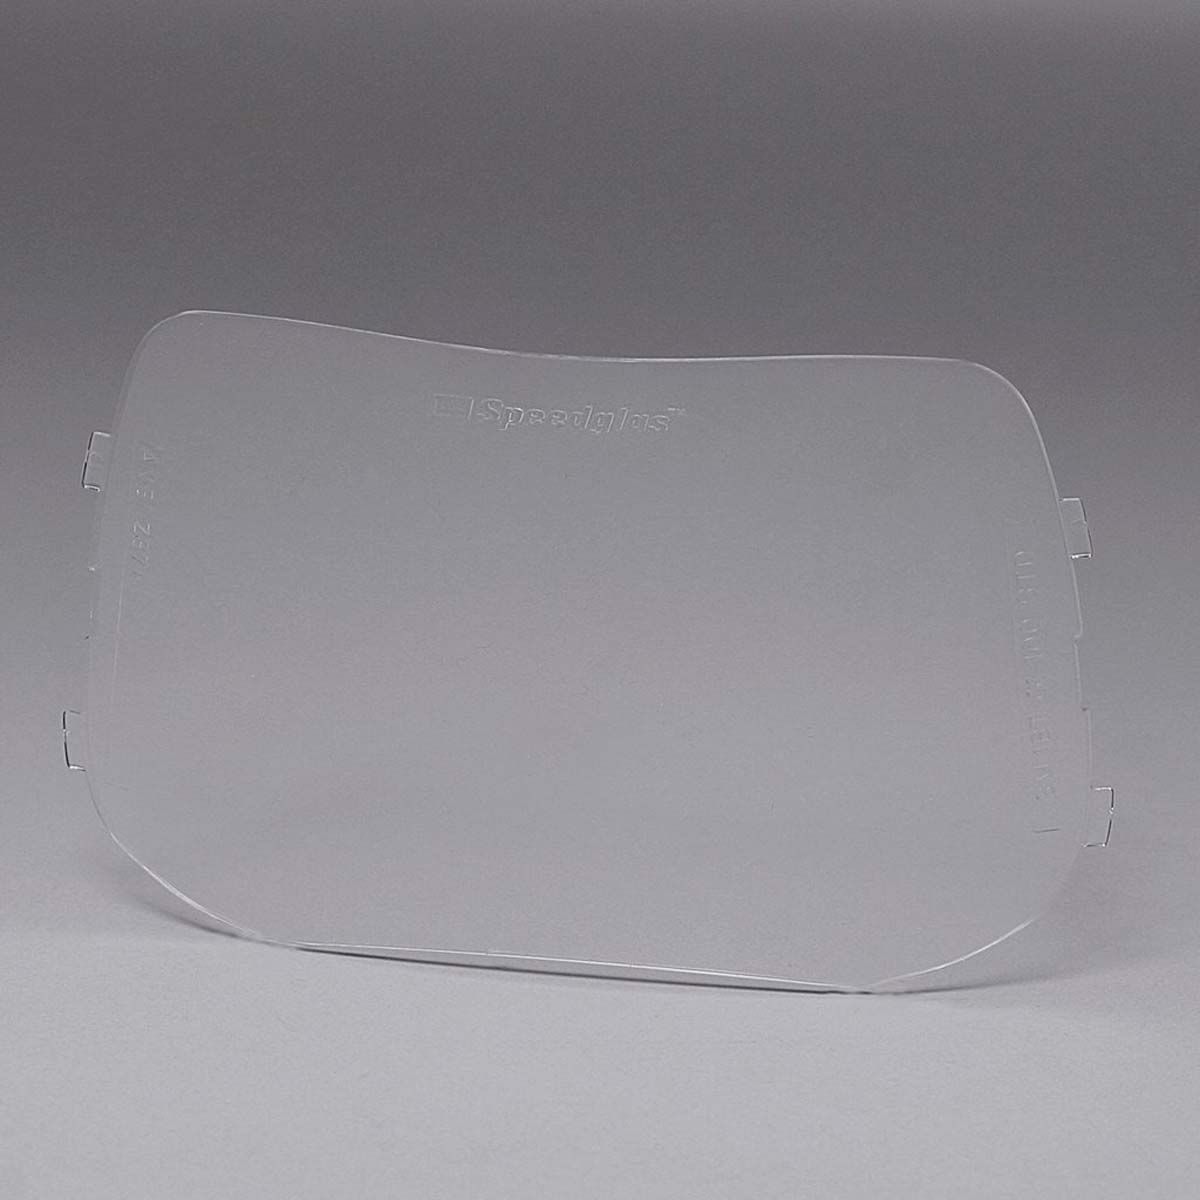 "3Mâ""¢ Speedglasâ""¢ Outside Protection Plate 9100 06-0200-51-B, Standard"